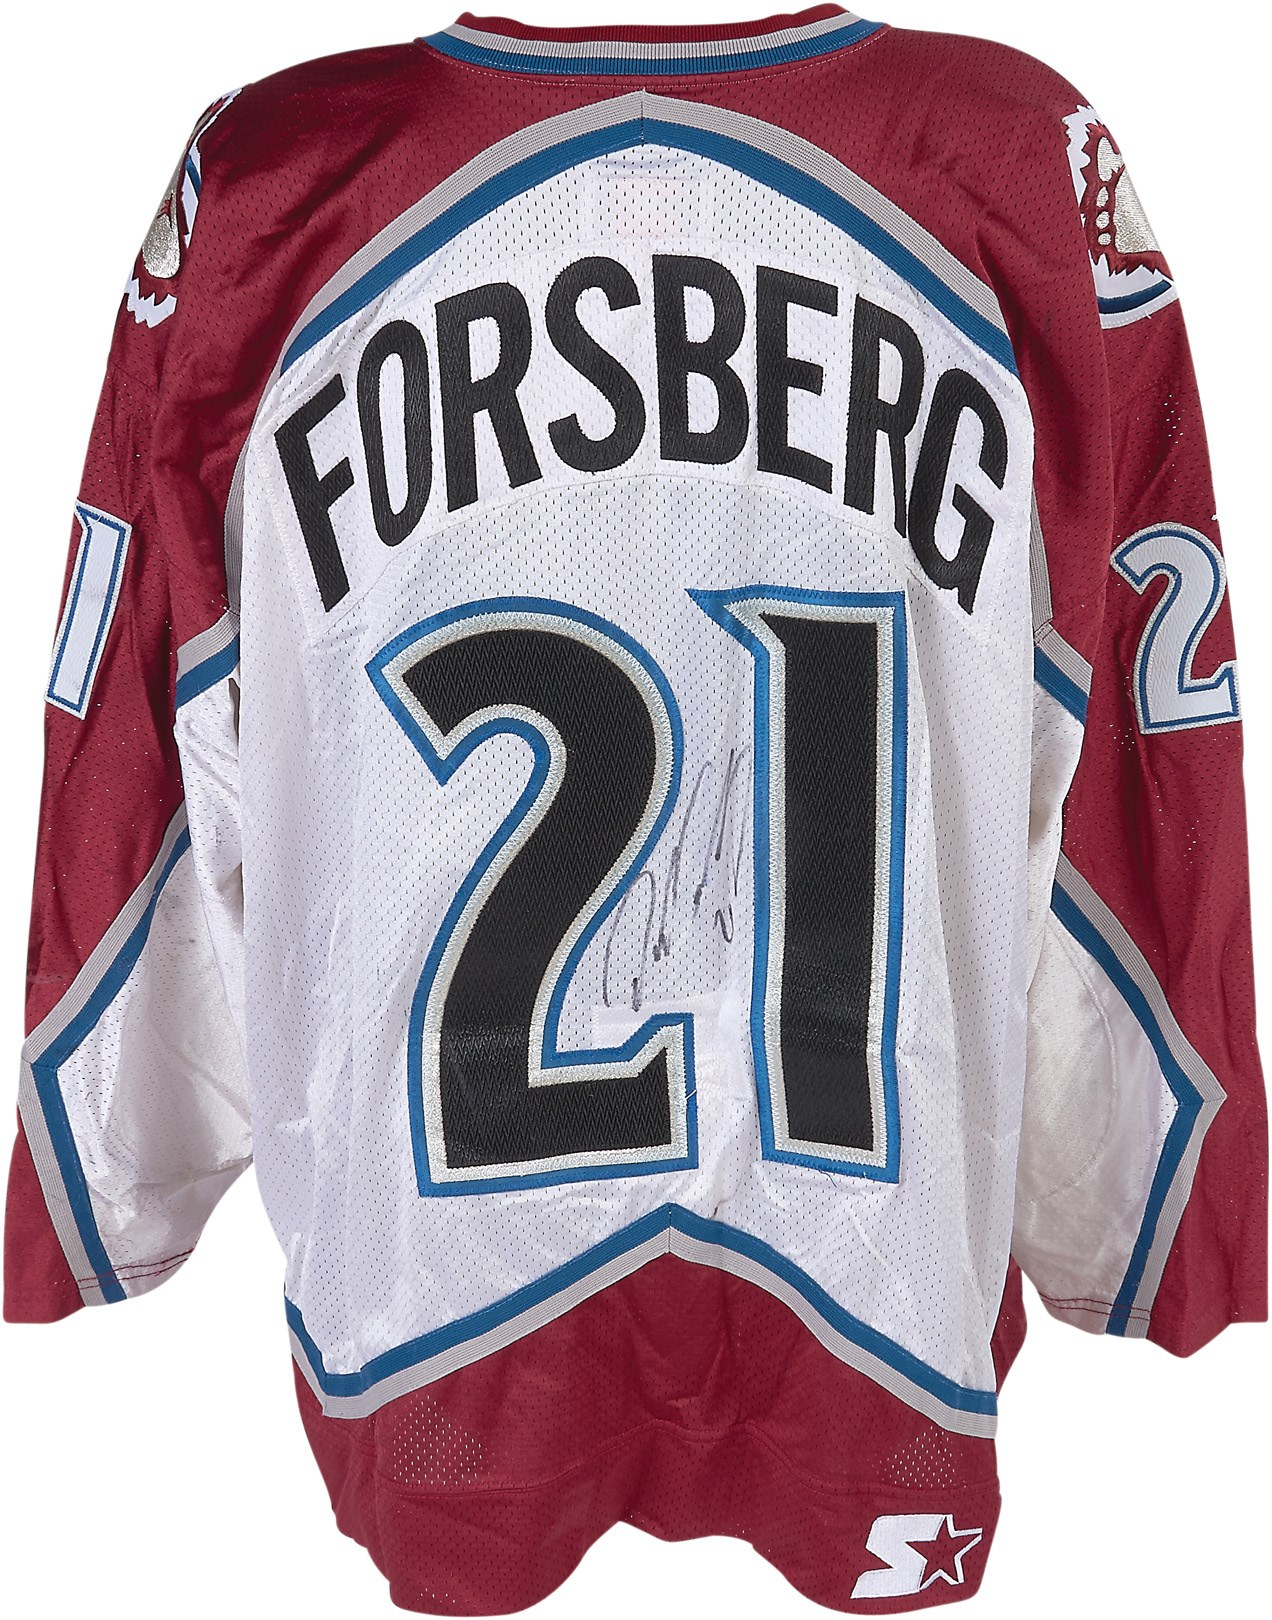 1998-99 Peter Forsberg Colorado Avalanche Game Worn Jersey (Photo-Matched, MeiGray)